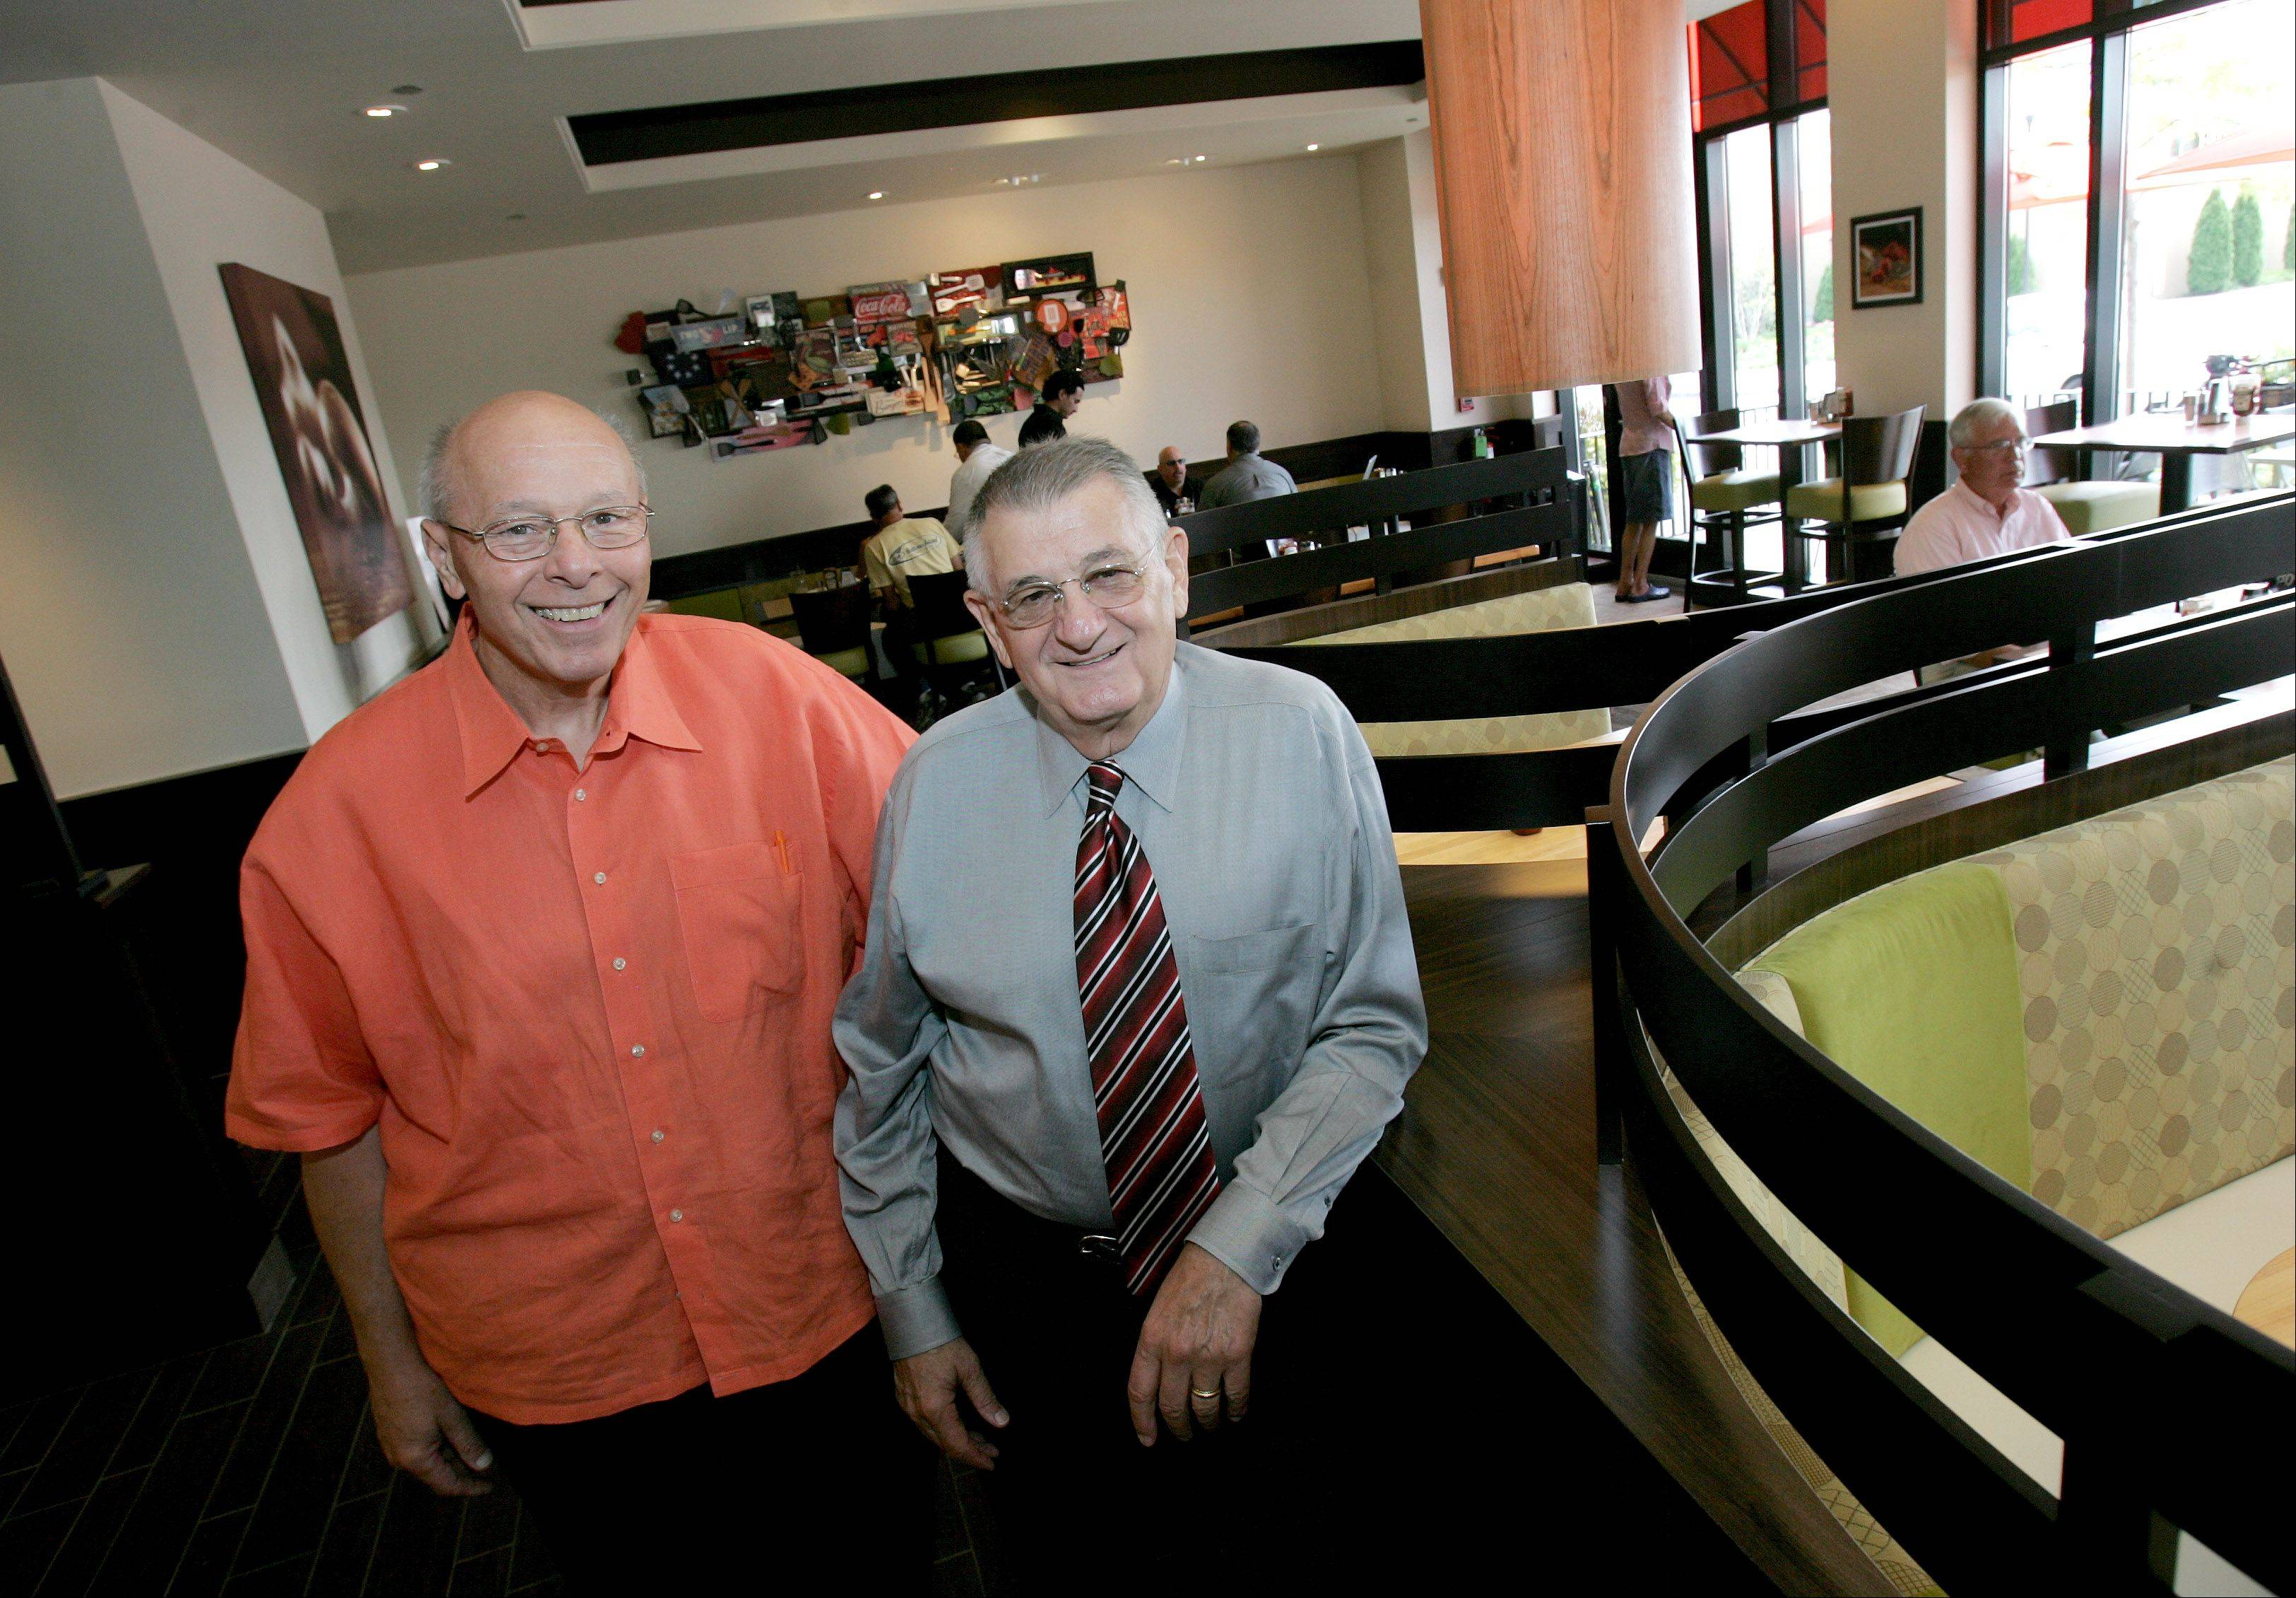 Ed Rensi, left, and Tom Dentice started a gourmet burger place called Tom & Eddies in Lombard. They're marking the first anniversary of their location in Deerfield.